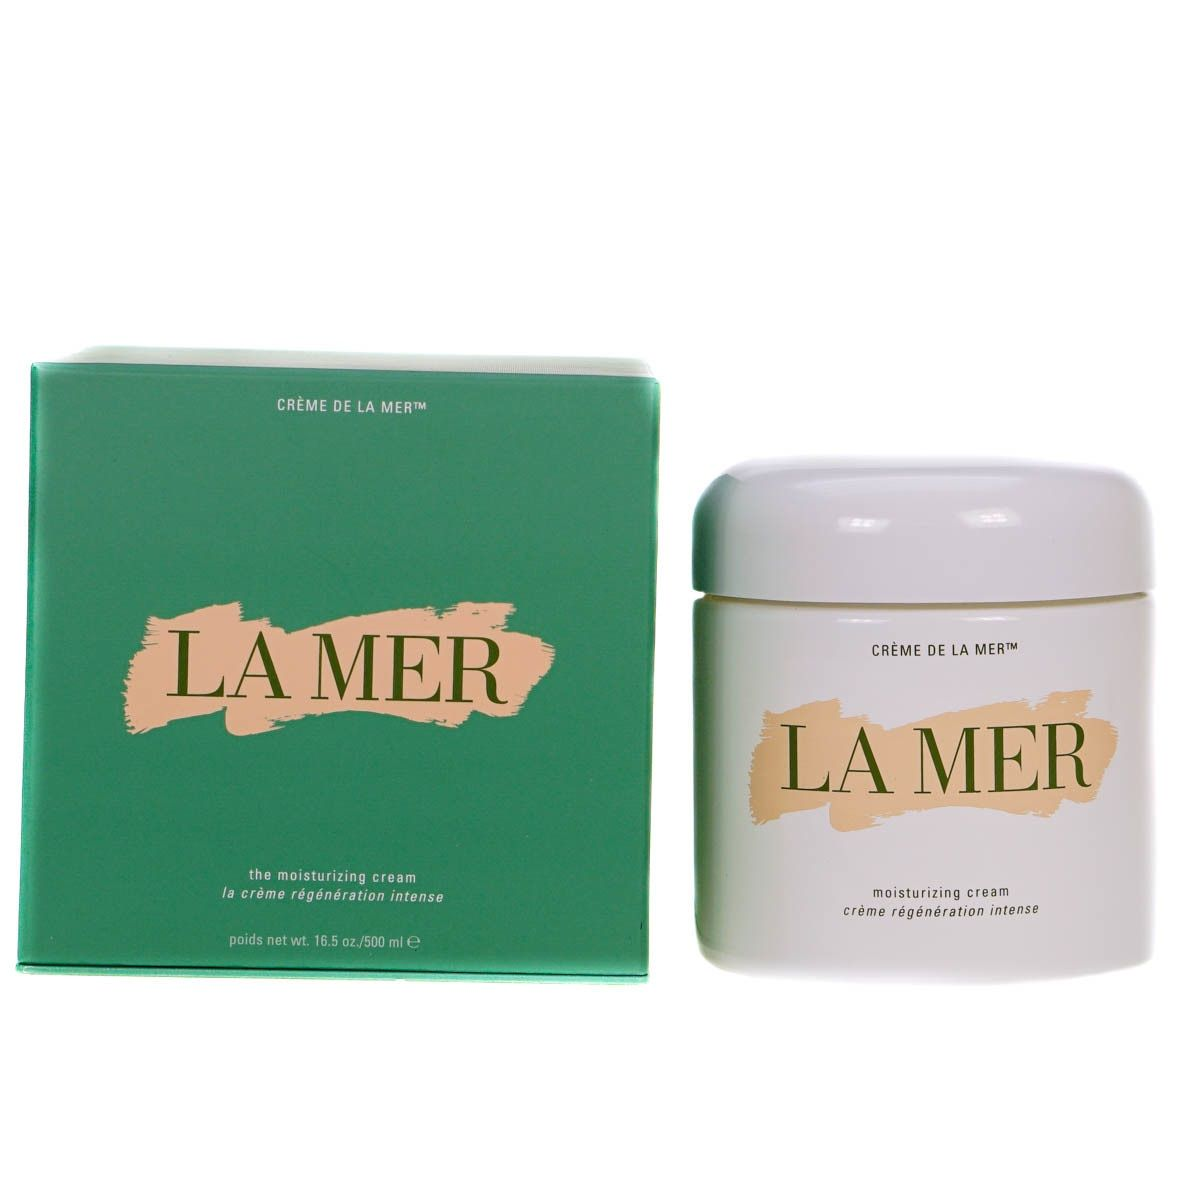 La Mer The Moisturizing Cream 500ml